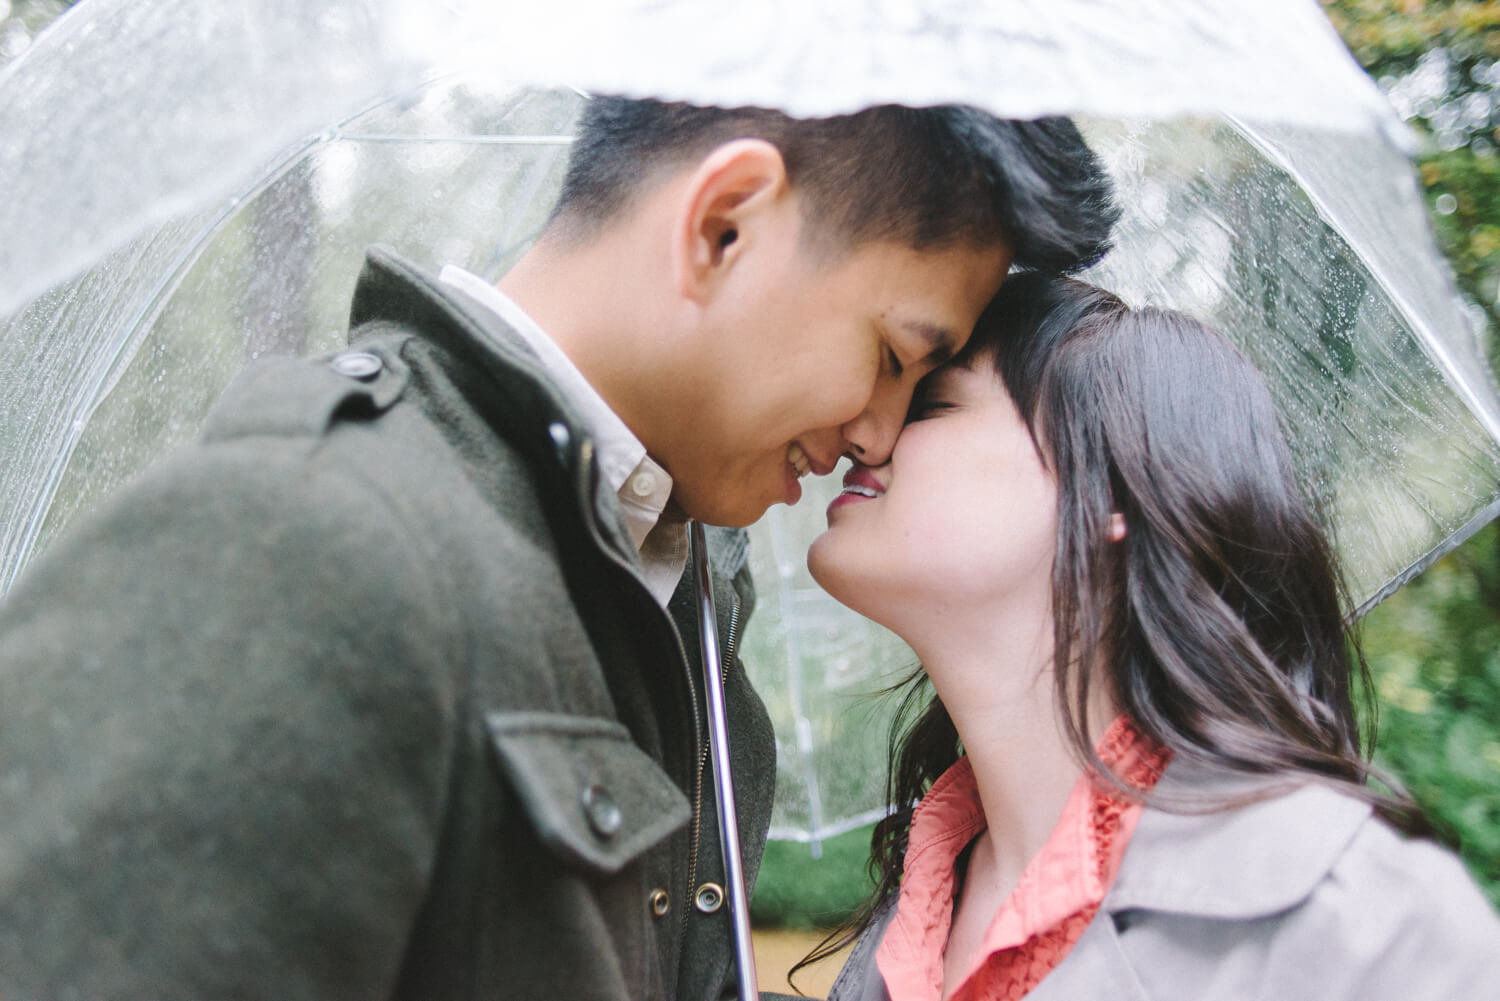 leach-botanical-garden-engagement-photography-portland-oregon-shelley-marie-photo-0297.jpg